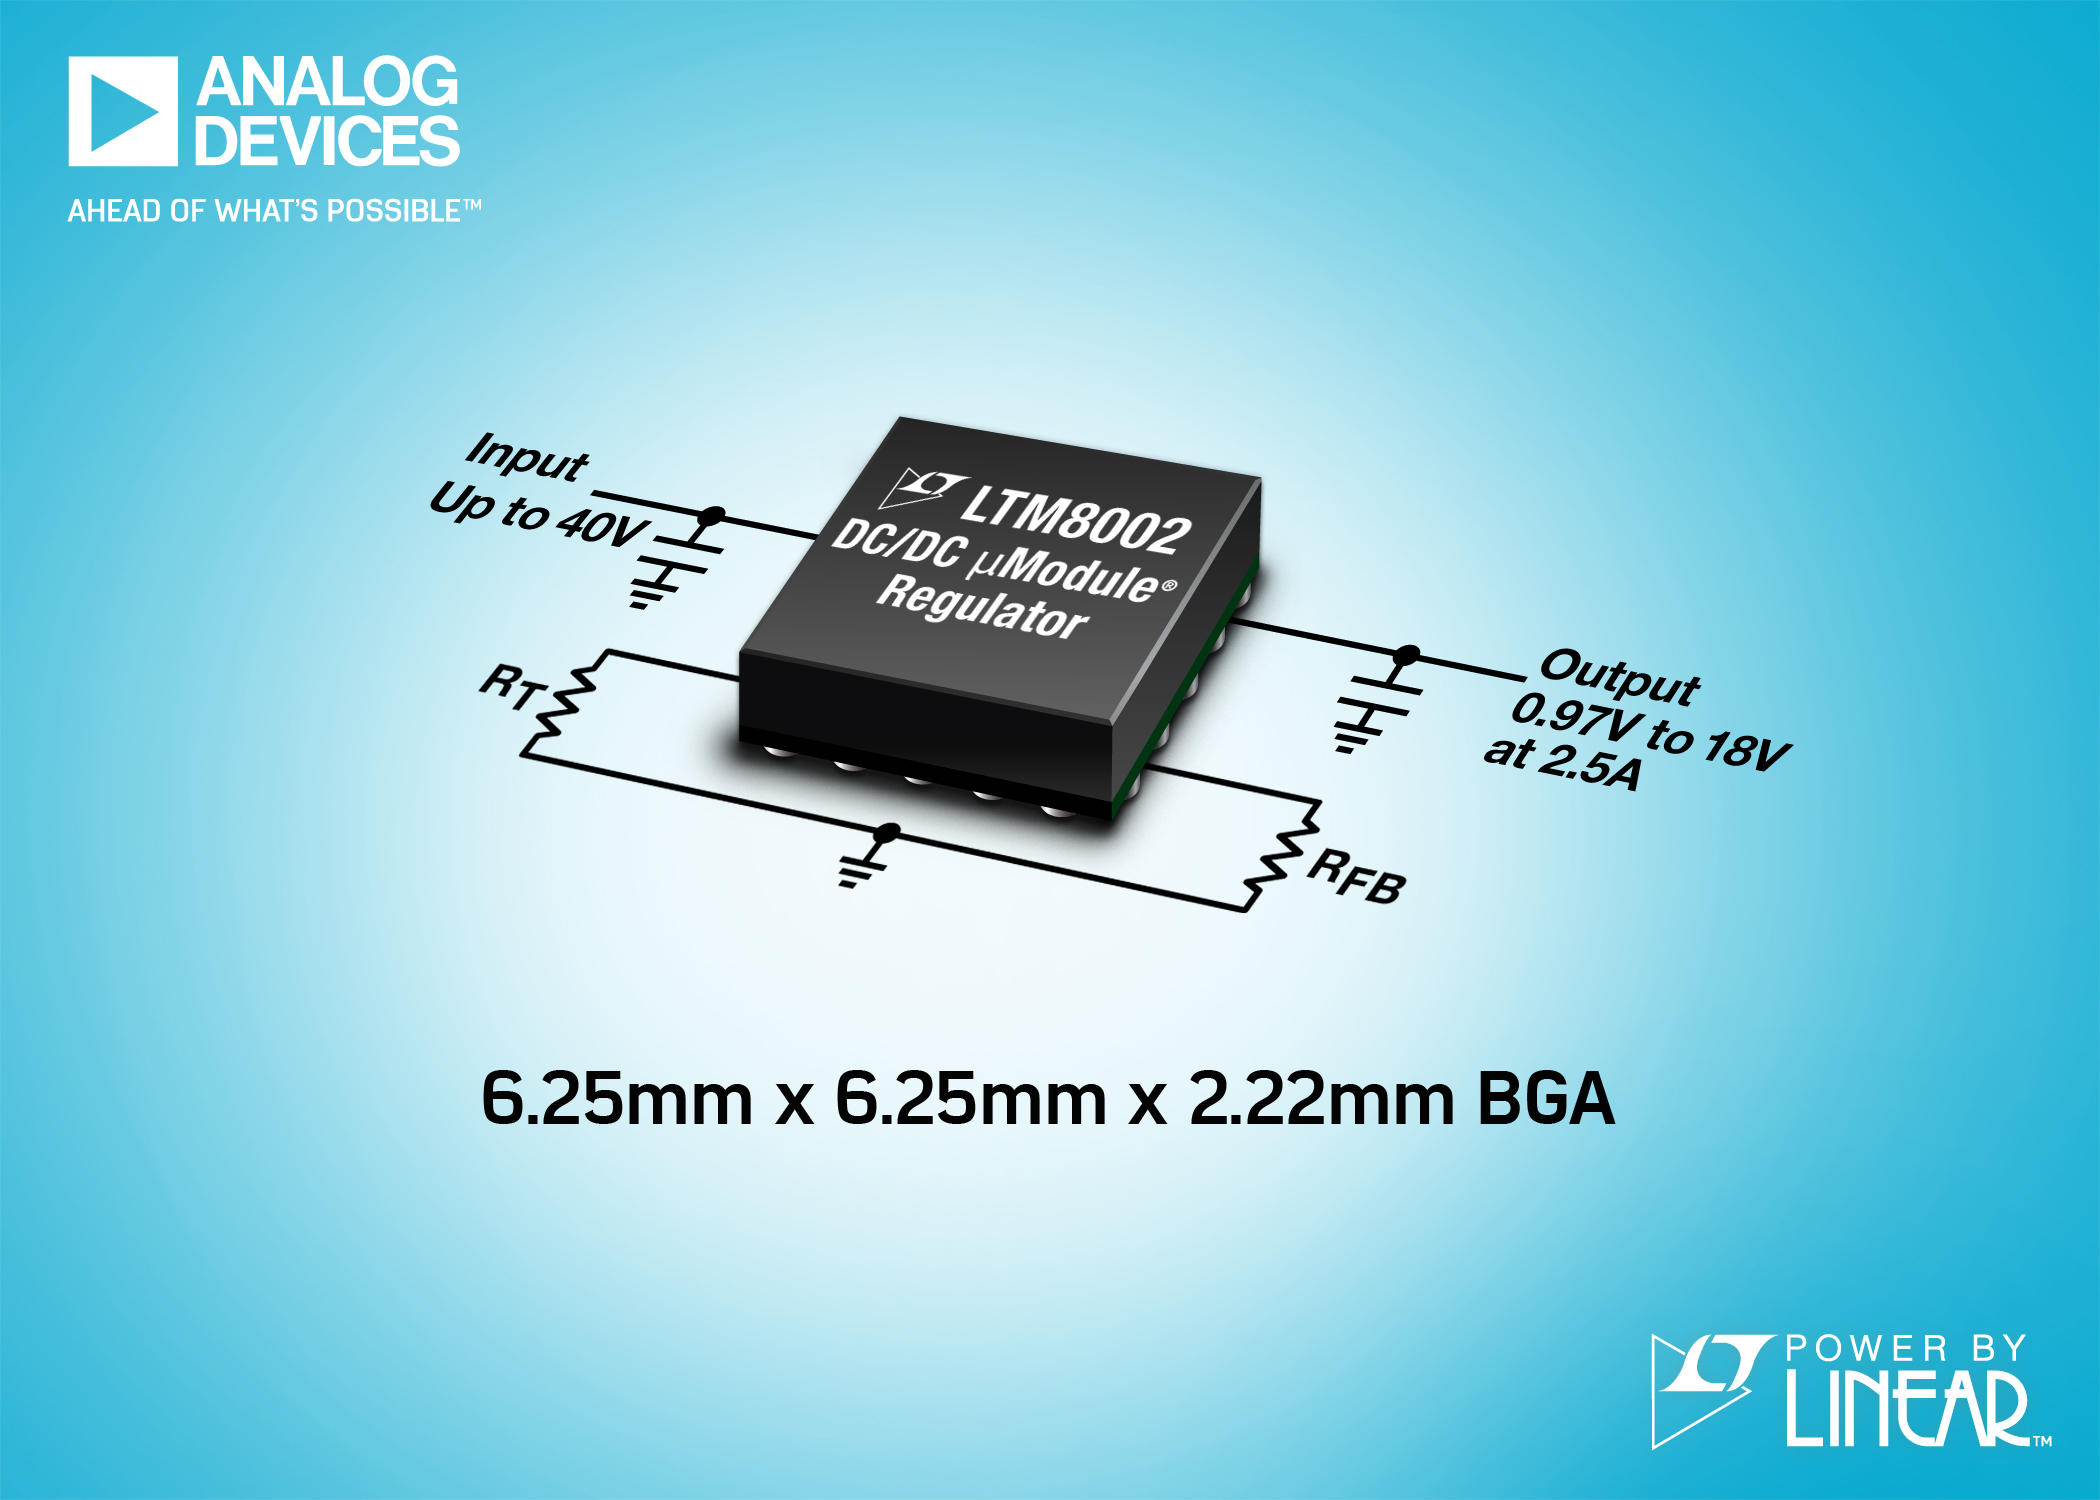 40V, 2.5A ÂμModule Regulator Comes in 6.25mm x 6.25mm BGA Package